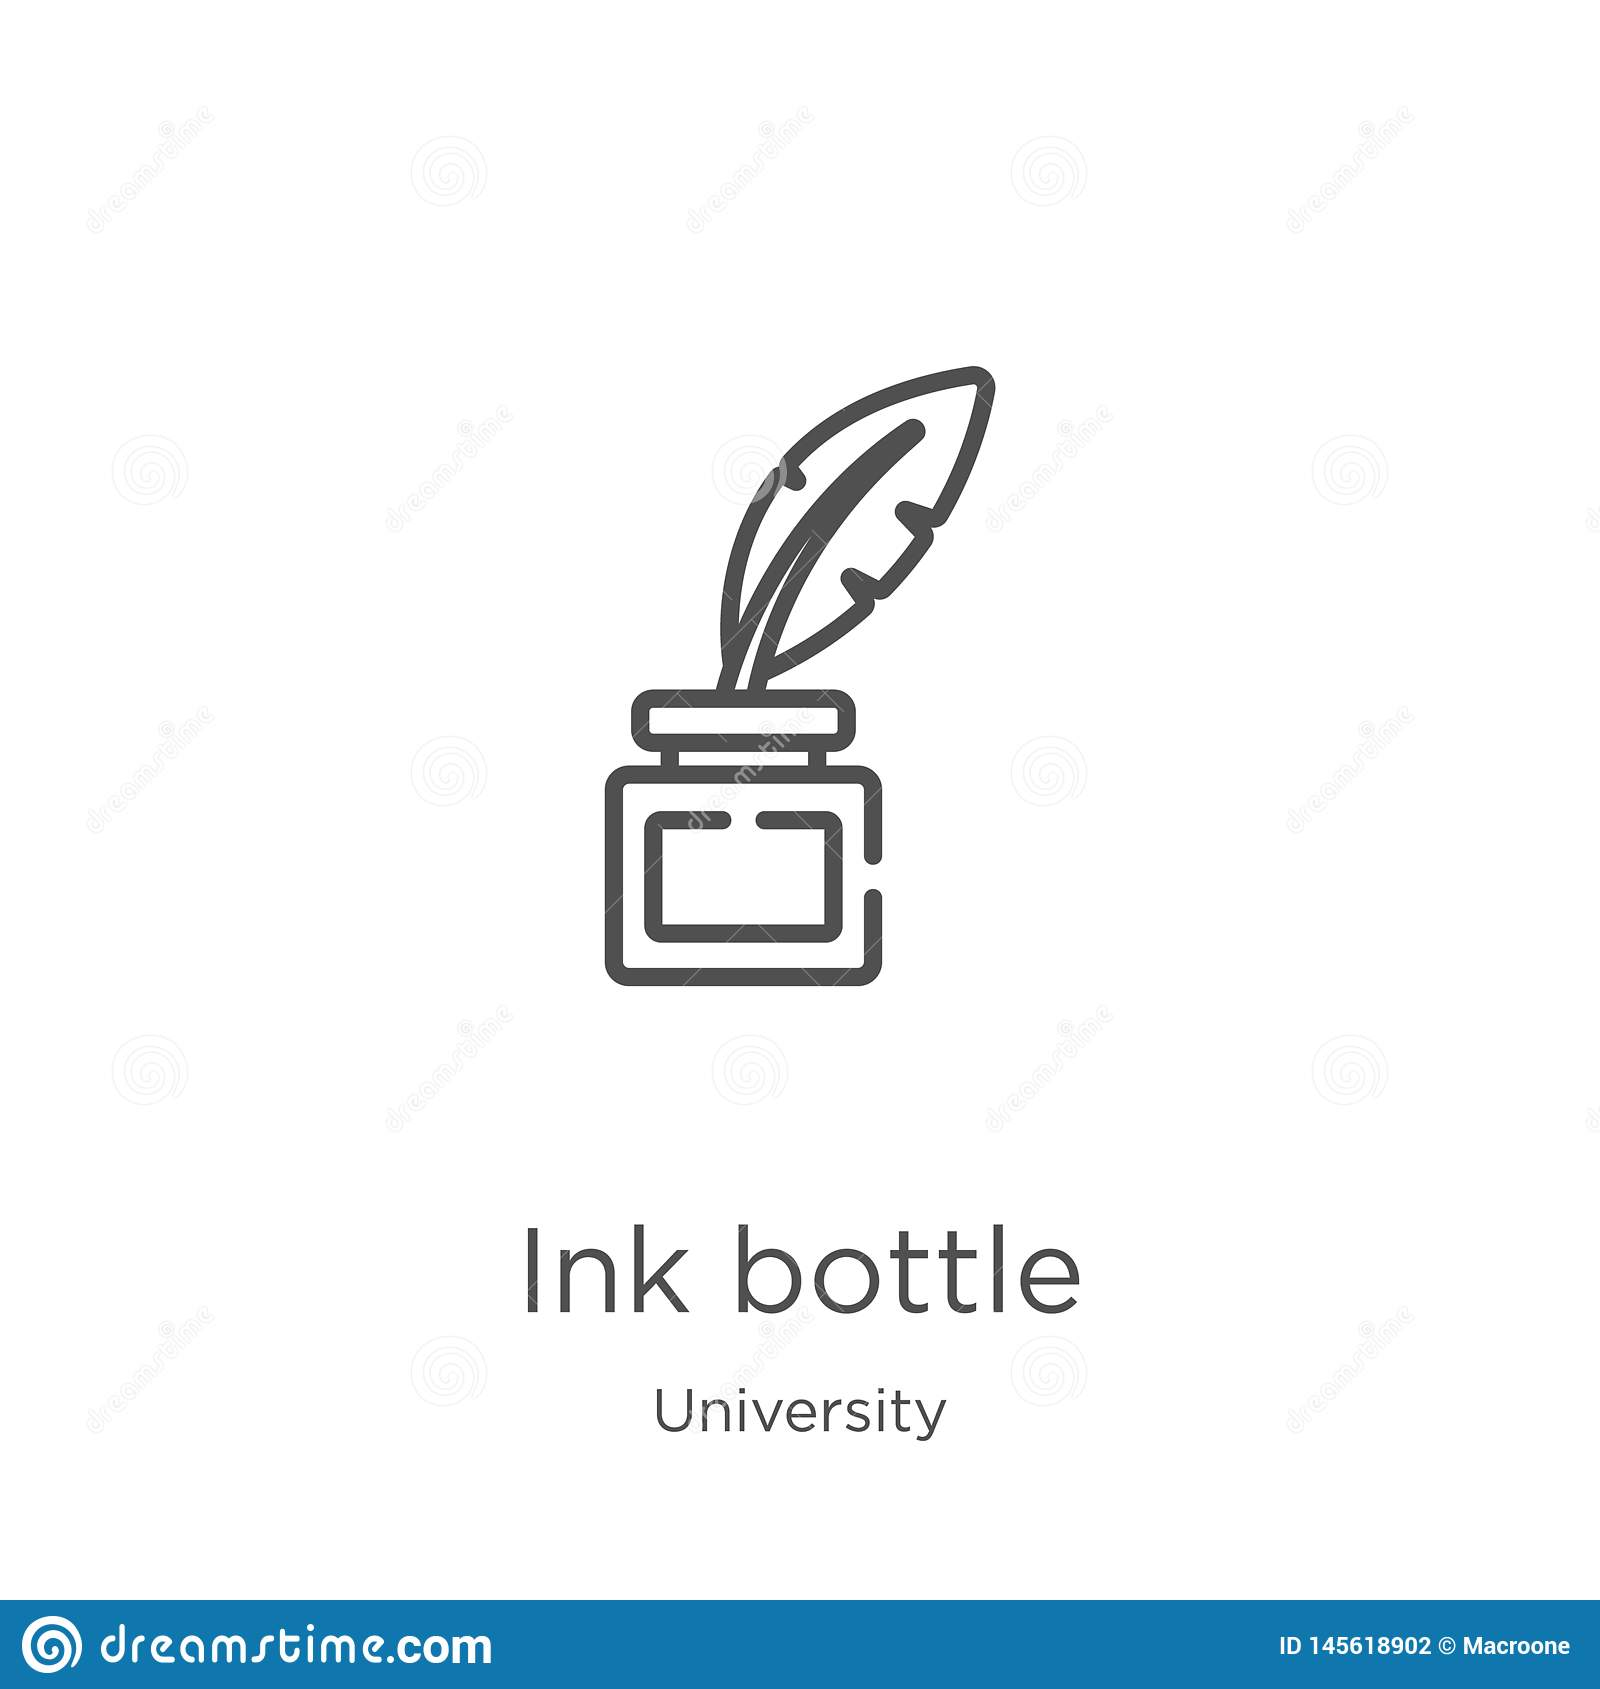 ink bottle icon vector from university collection. Thin line ink bottle outline icon vector illustration. Outline, thin line ink